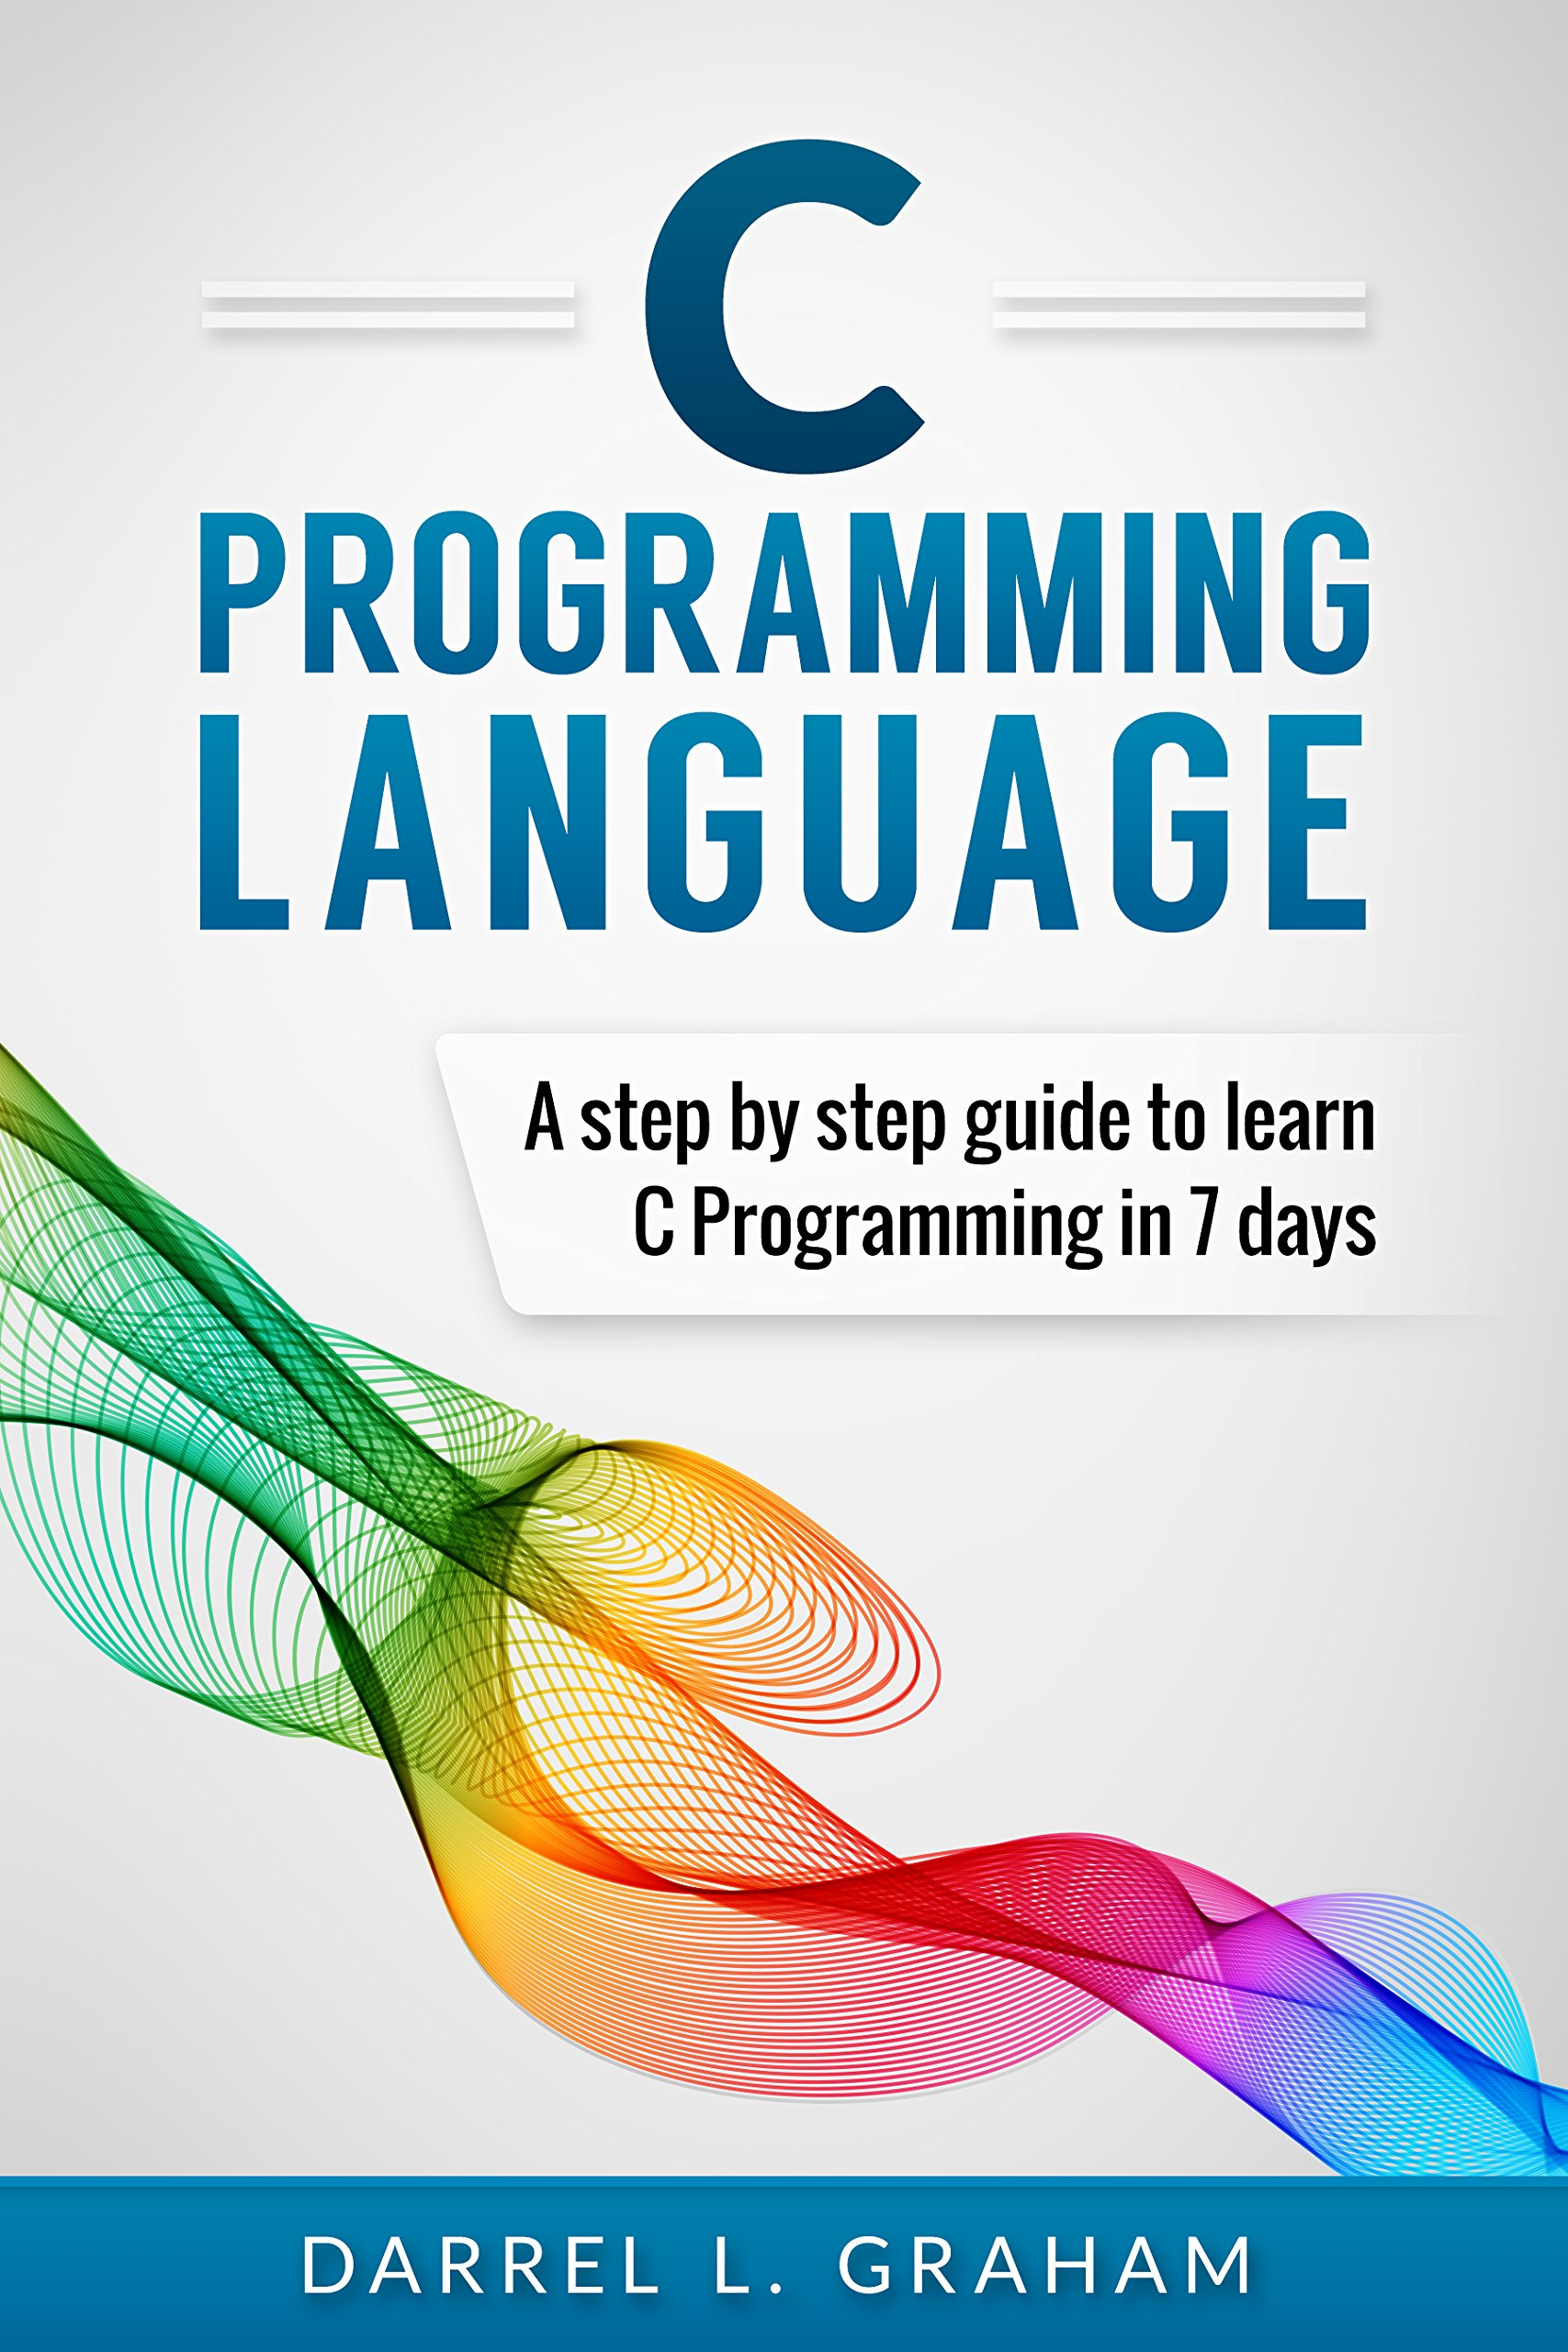 Image OfC Programming Language: The Ultimate Guide For Beginners (English Edition)